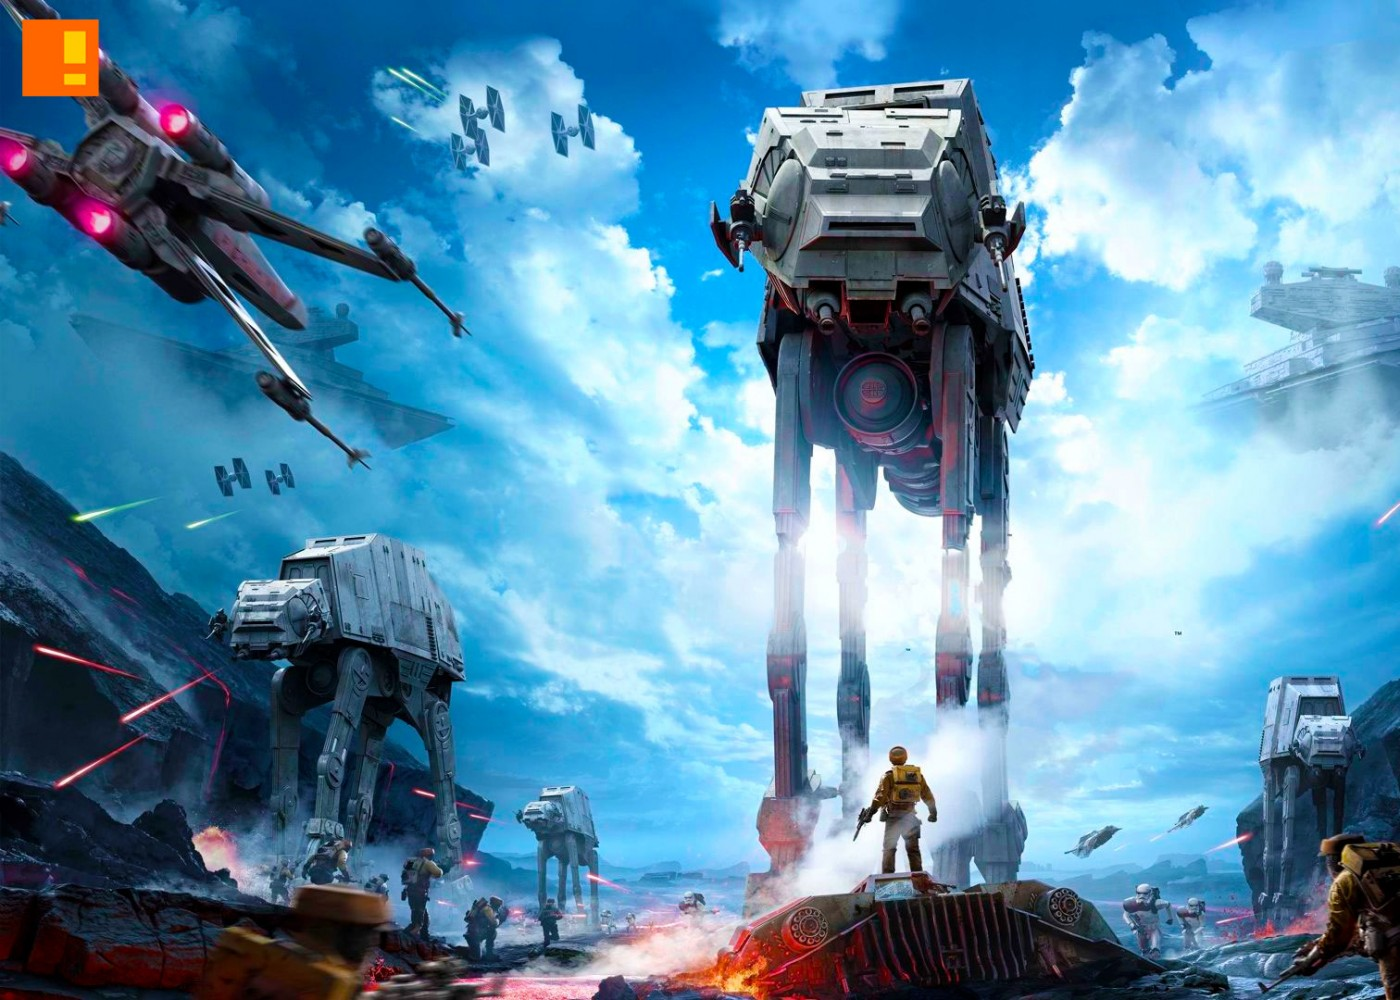 star wars, battlefront, star wars battlefront, the action pixel, entertainment on tap, sequel, ea games, dice, dice games, electronic arts, visceral games,